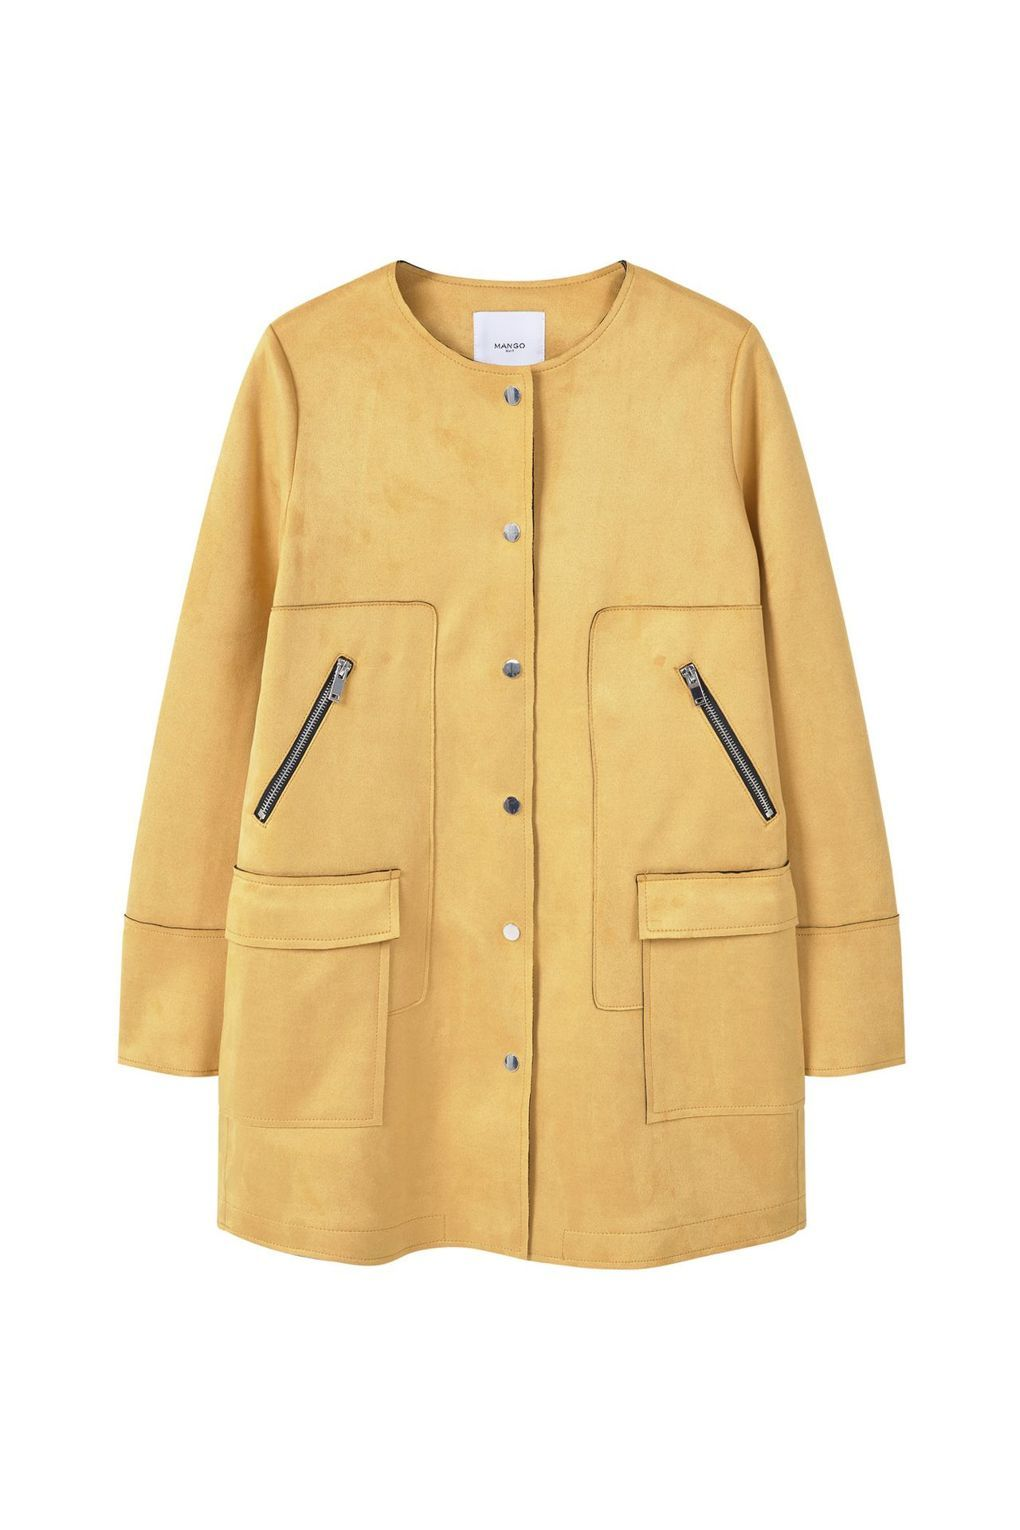 Vogue edits the best women's winter coats under £300: the search ...